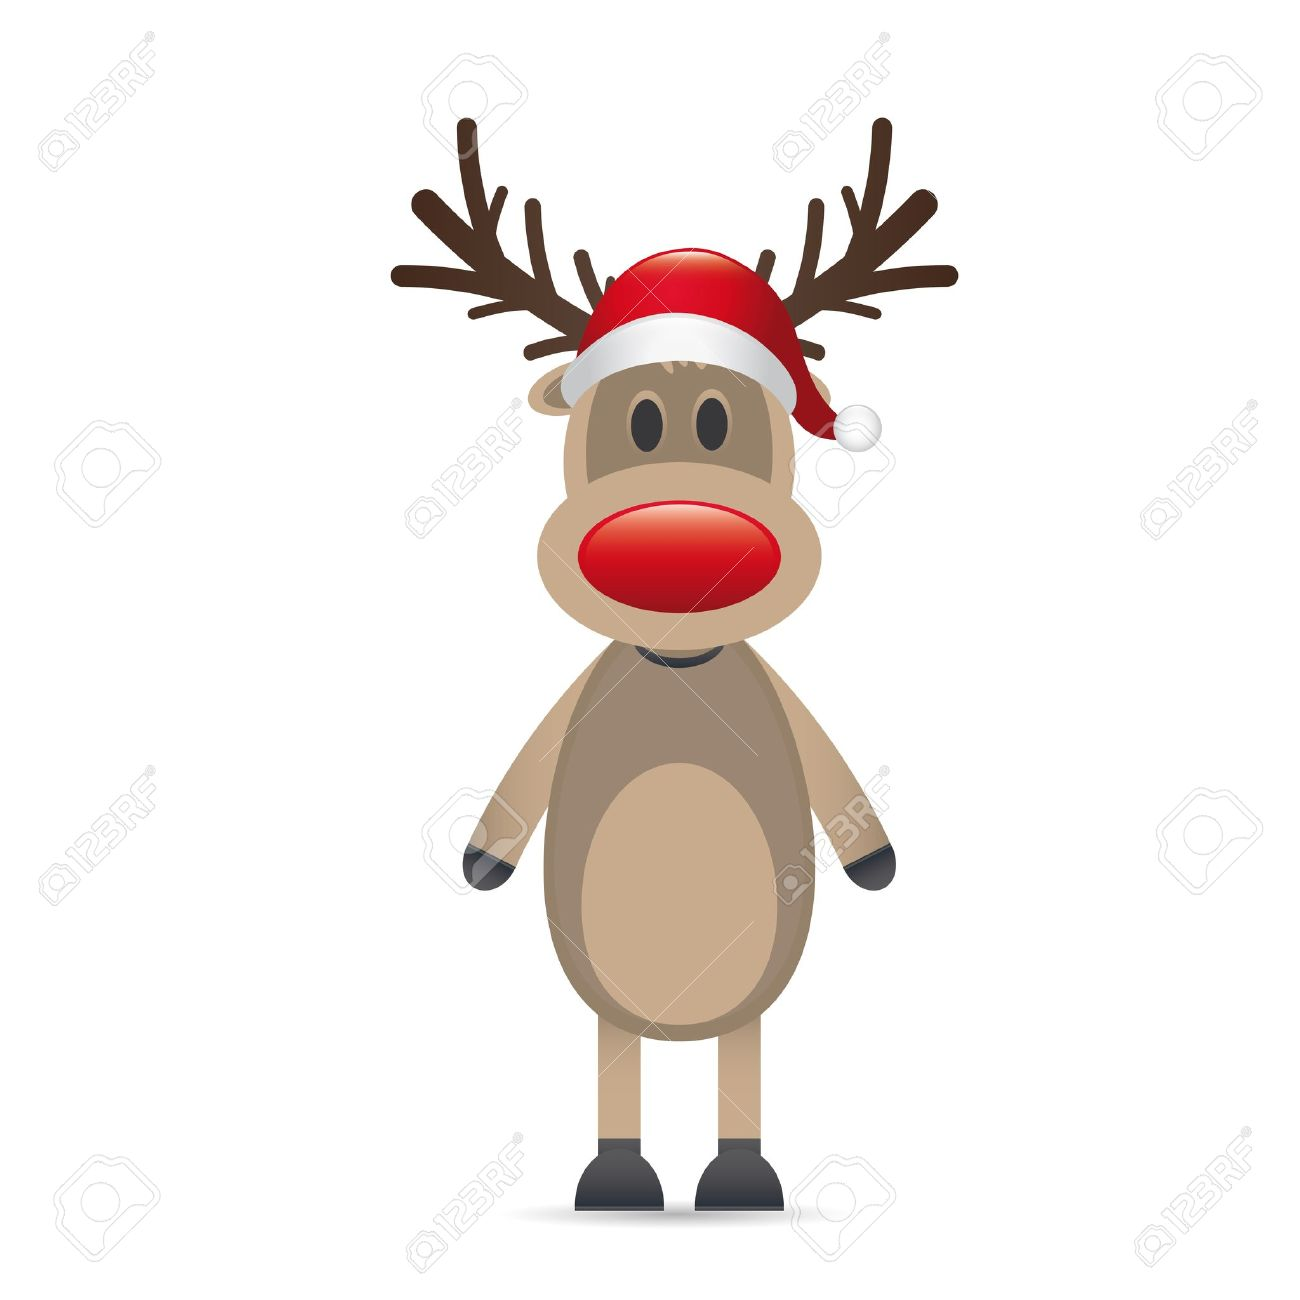 86f45bd3cfcd0 rudolph reindeer red nose santa claus hat Stock Photo - 15274650